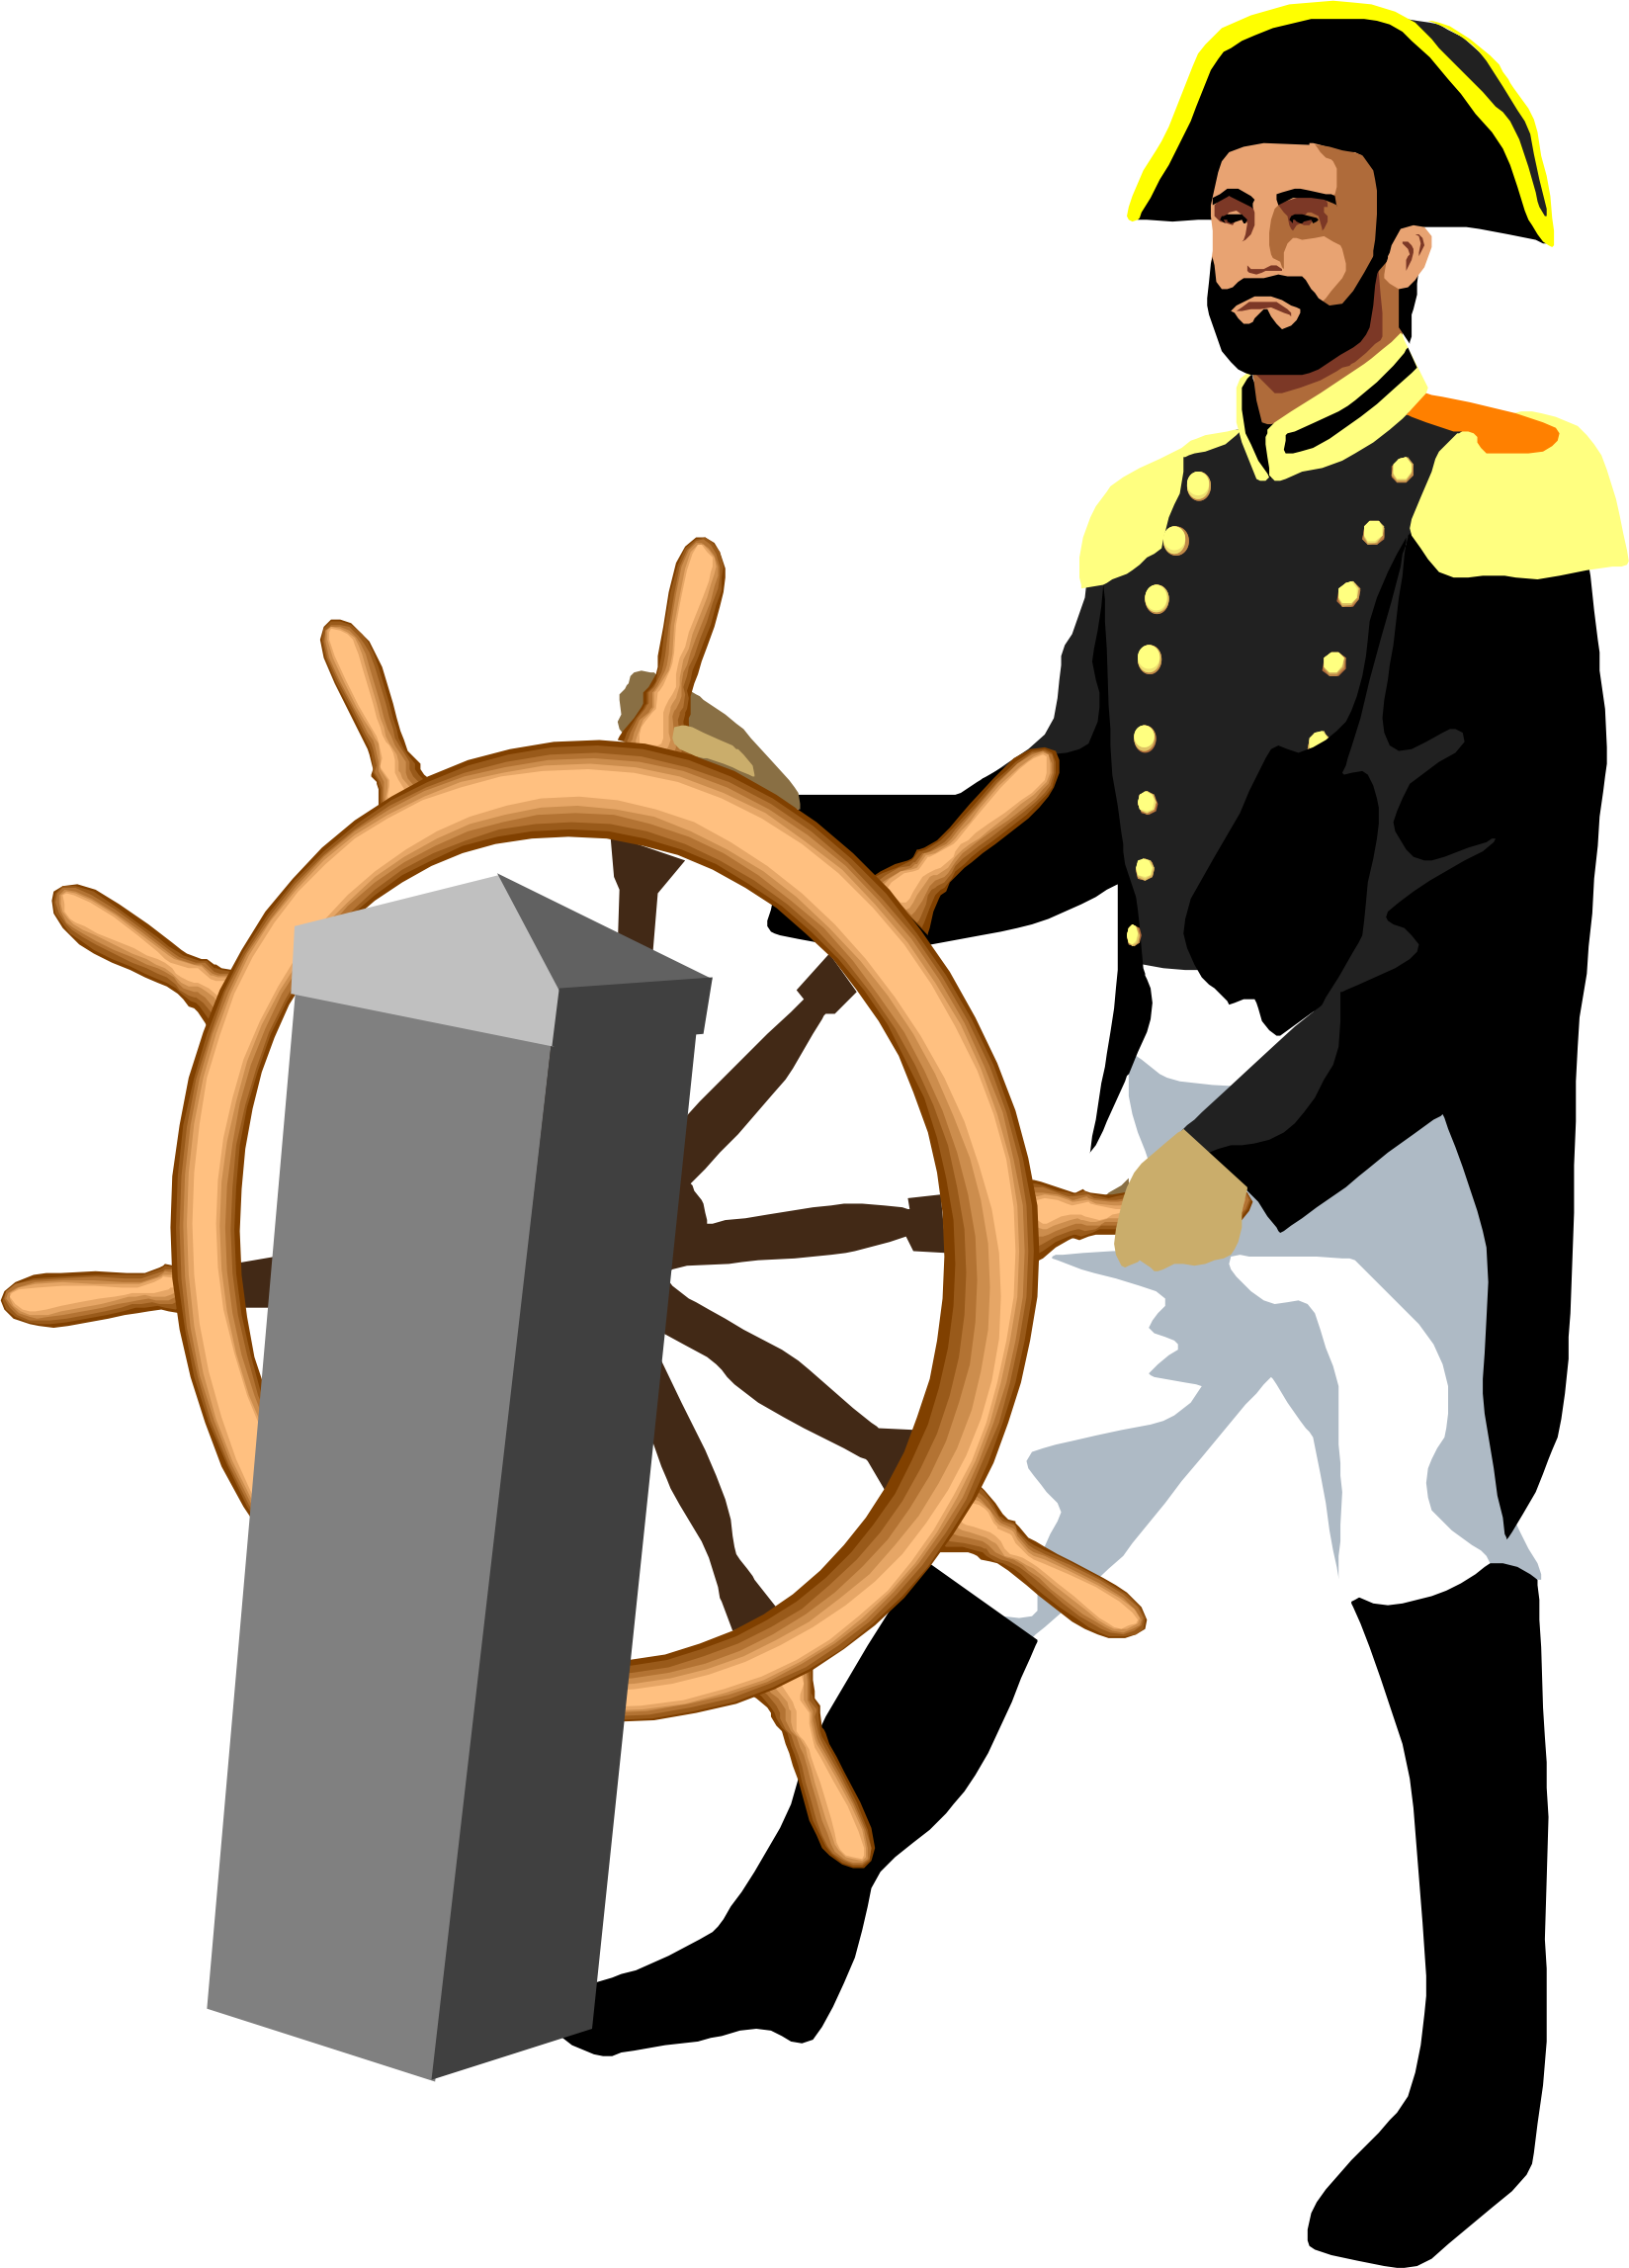 vice admiral Horatio Nelson by cactus cowboy